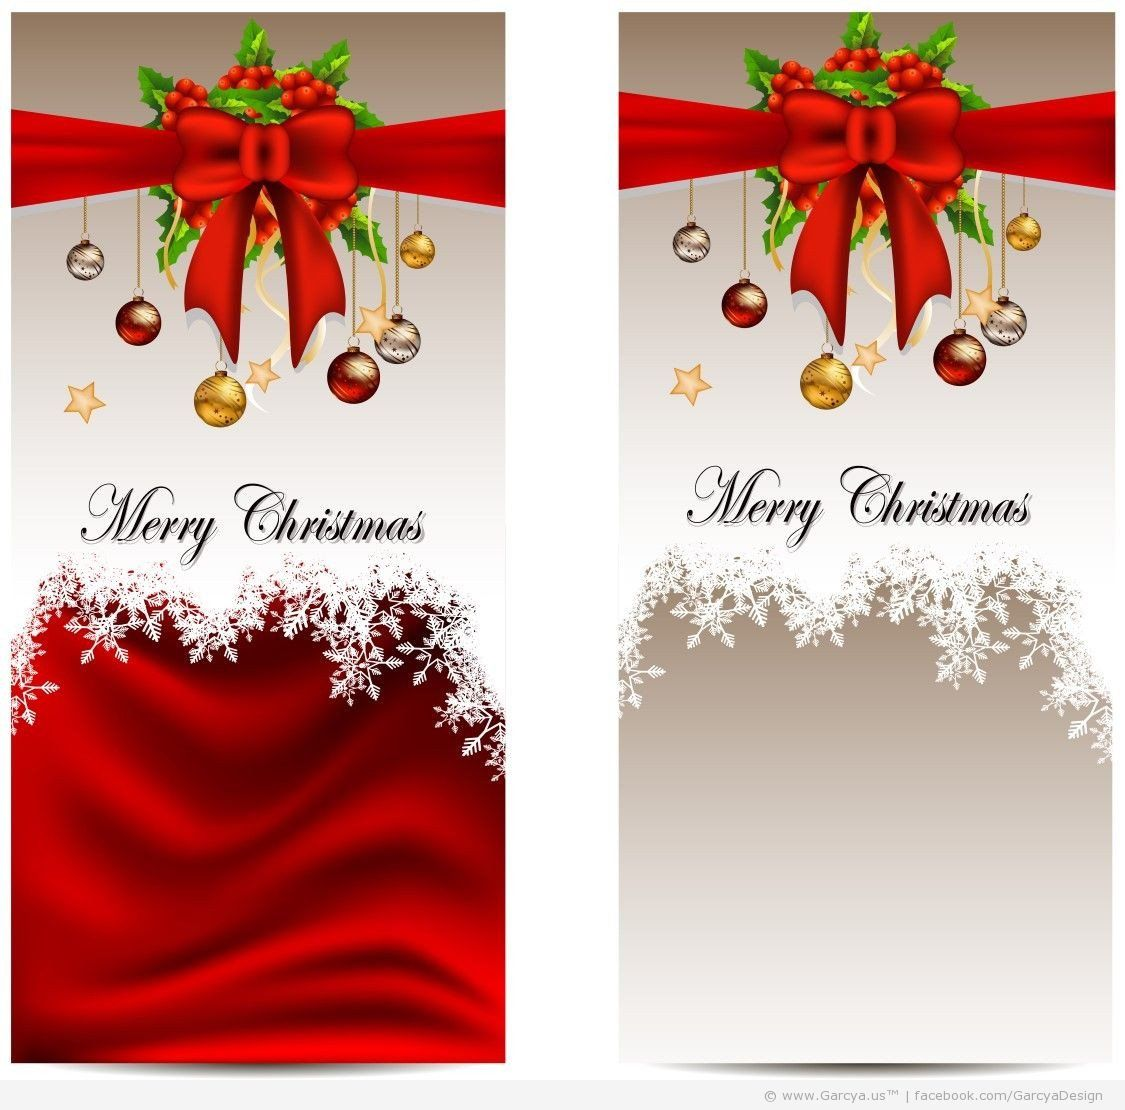 Ms Word Christmas Card Template Best Of Christmas Card Templates Christmas Card Template Free Holiday Cards Christmas Greeting Card Template